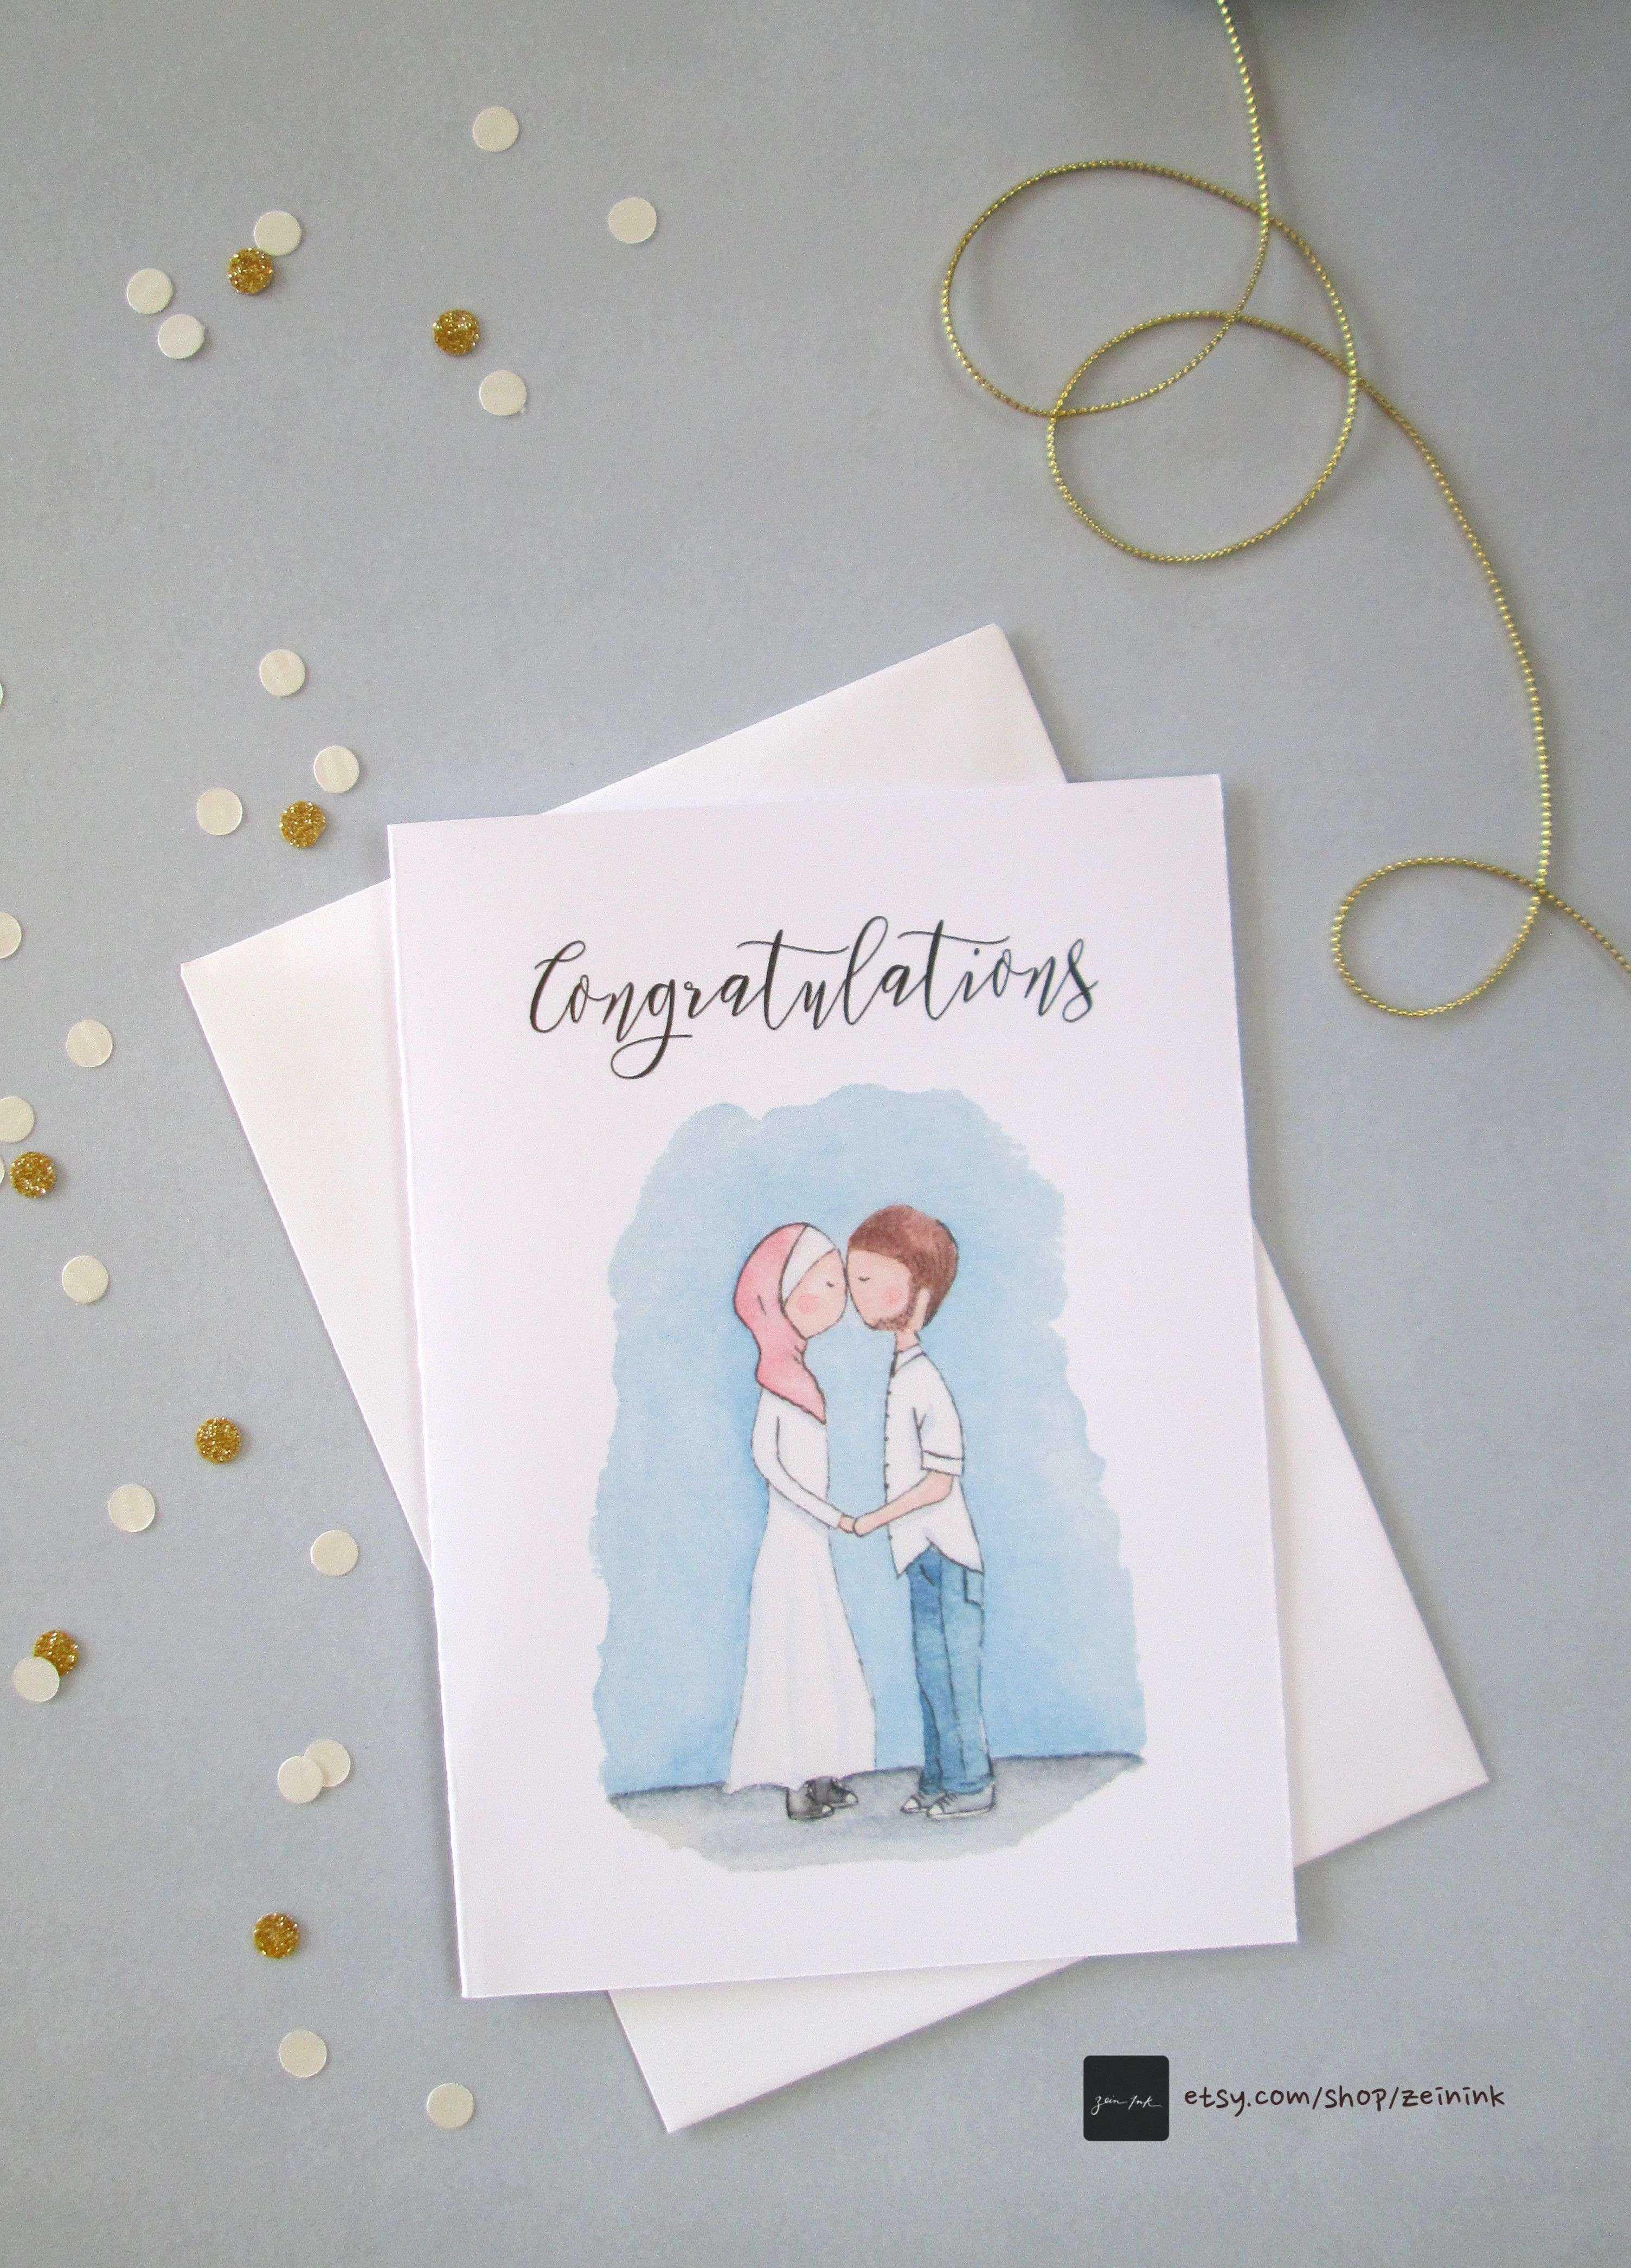 Watercolour Congratulations card available for download at